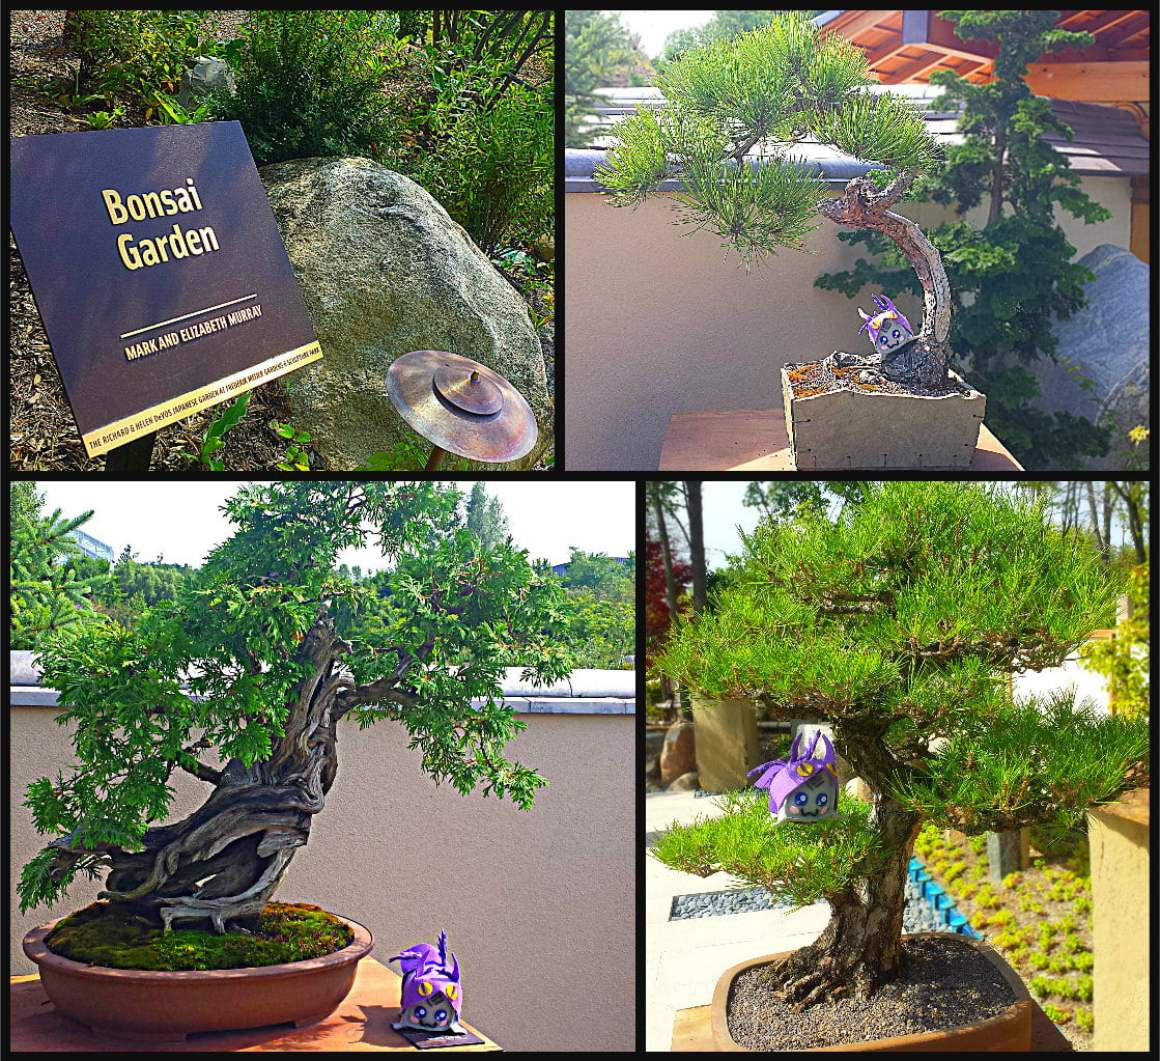 Richard & Helen DeVos Japanese Garden Japanese Bonsai Garden Meijer Gardens Adventure Dragon